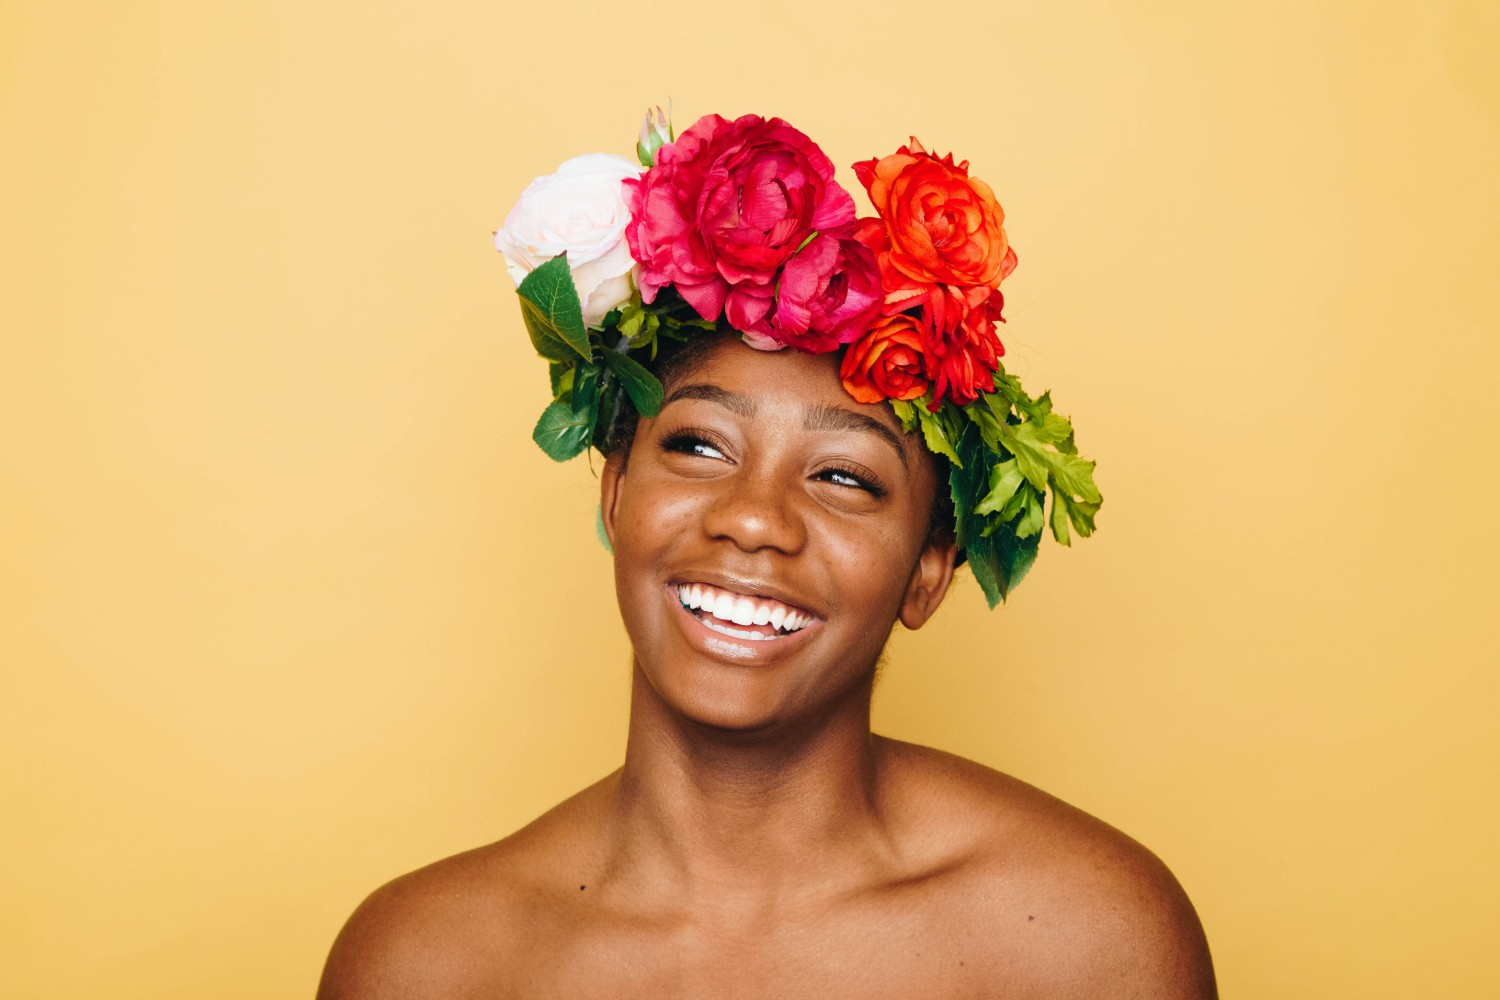 Woman wearing flower crown